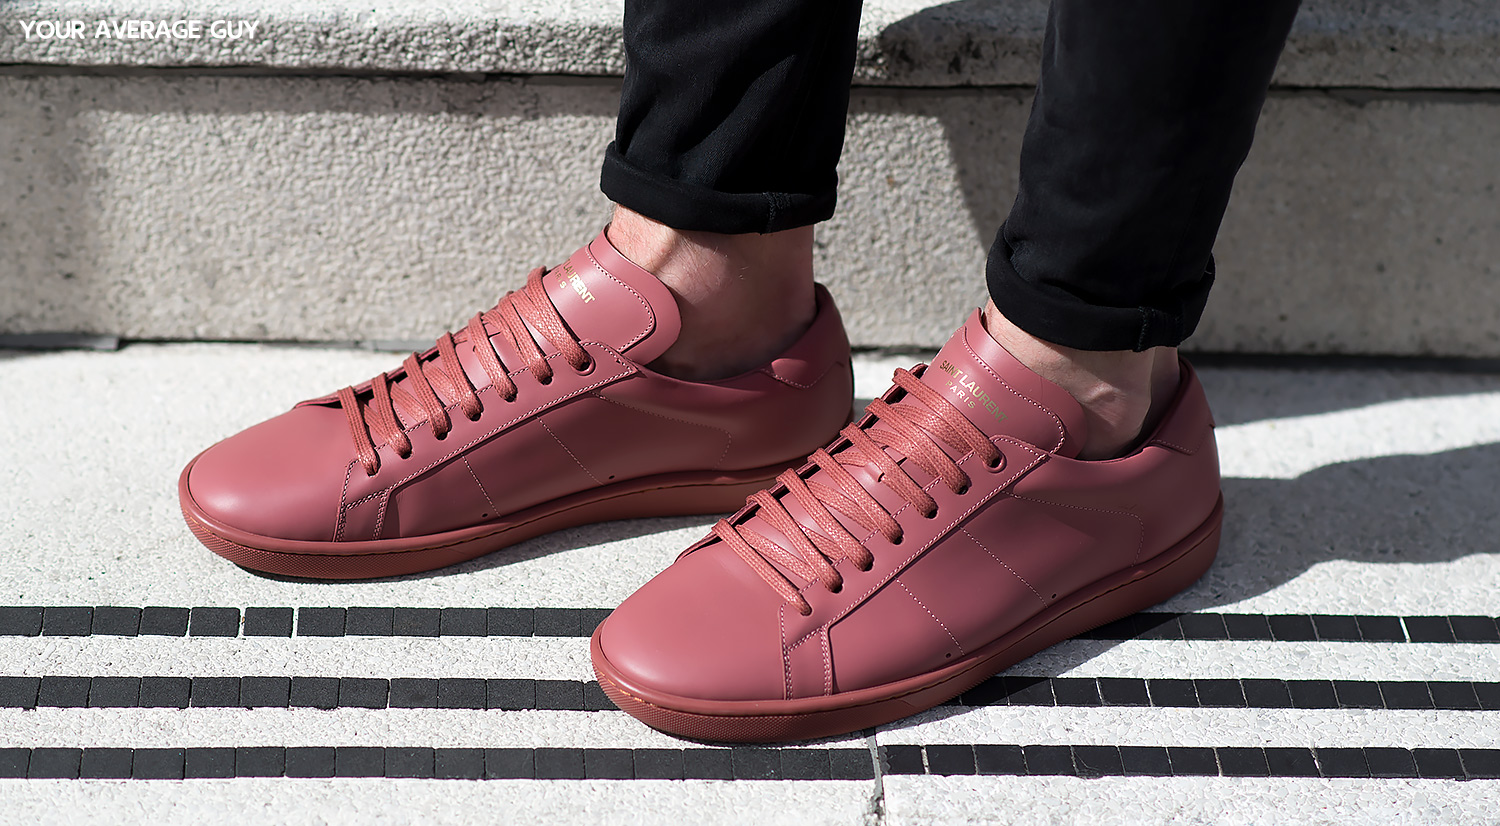 Rose Court Laurent ReviewYour Dusty Sneakers Saint Classic TwZiOXPku